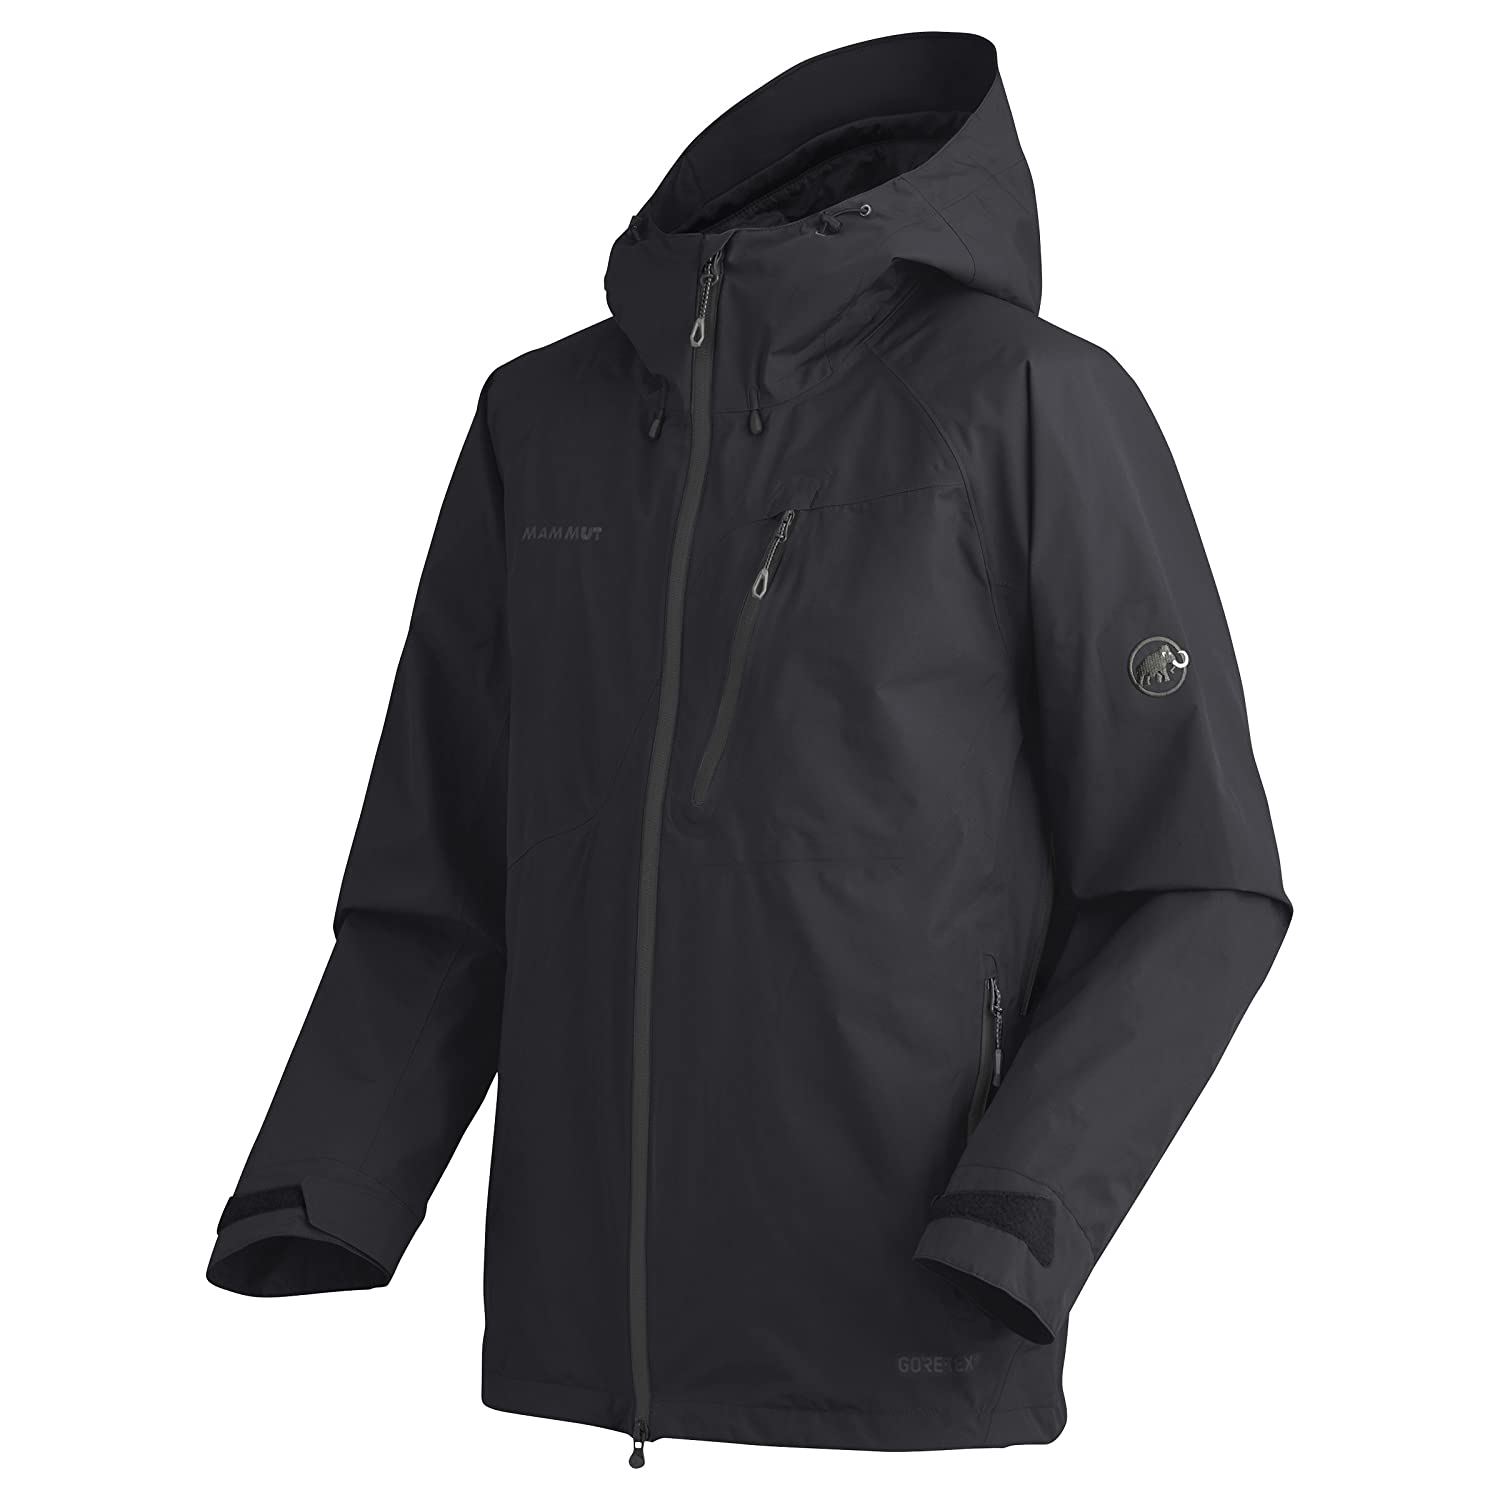 GORE-TEX ALL WEATHER JACKET